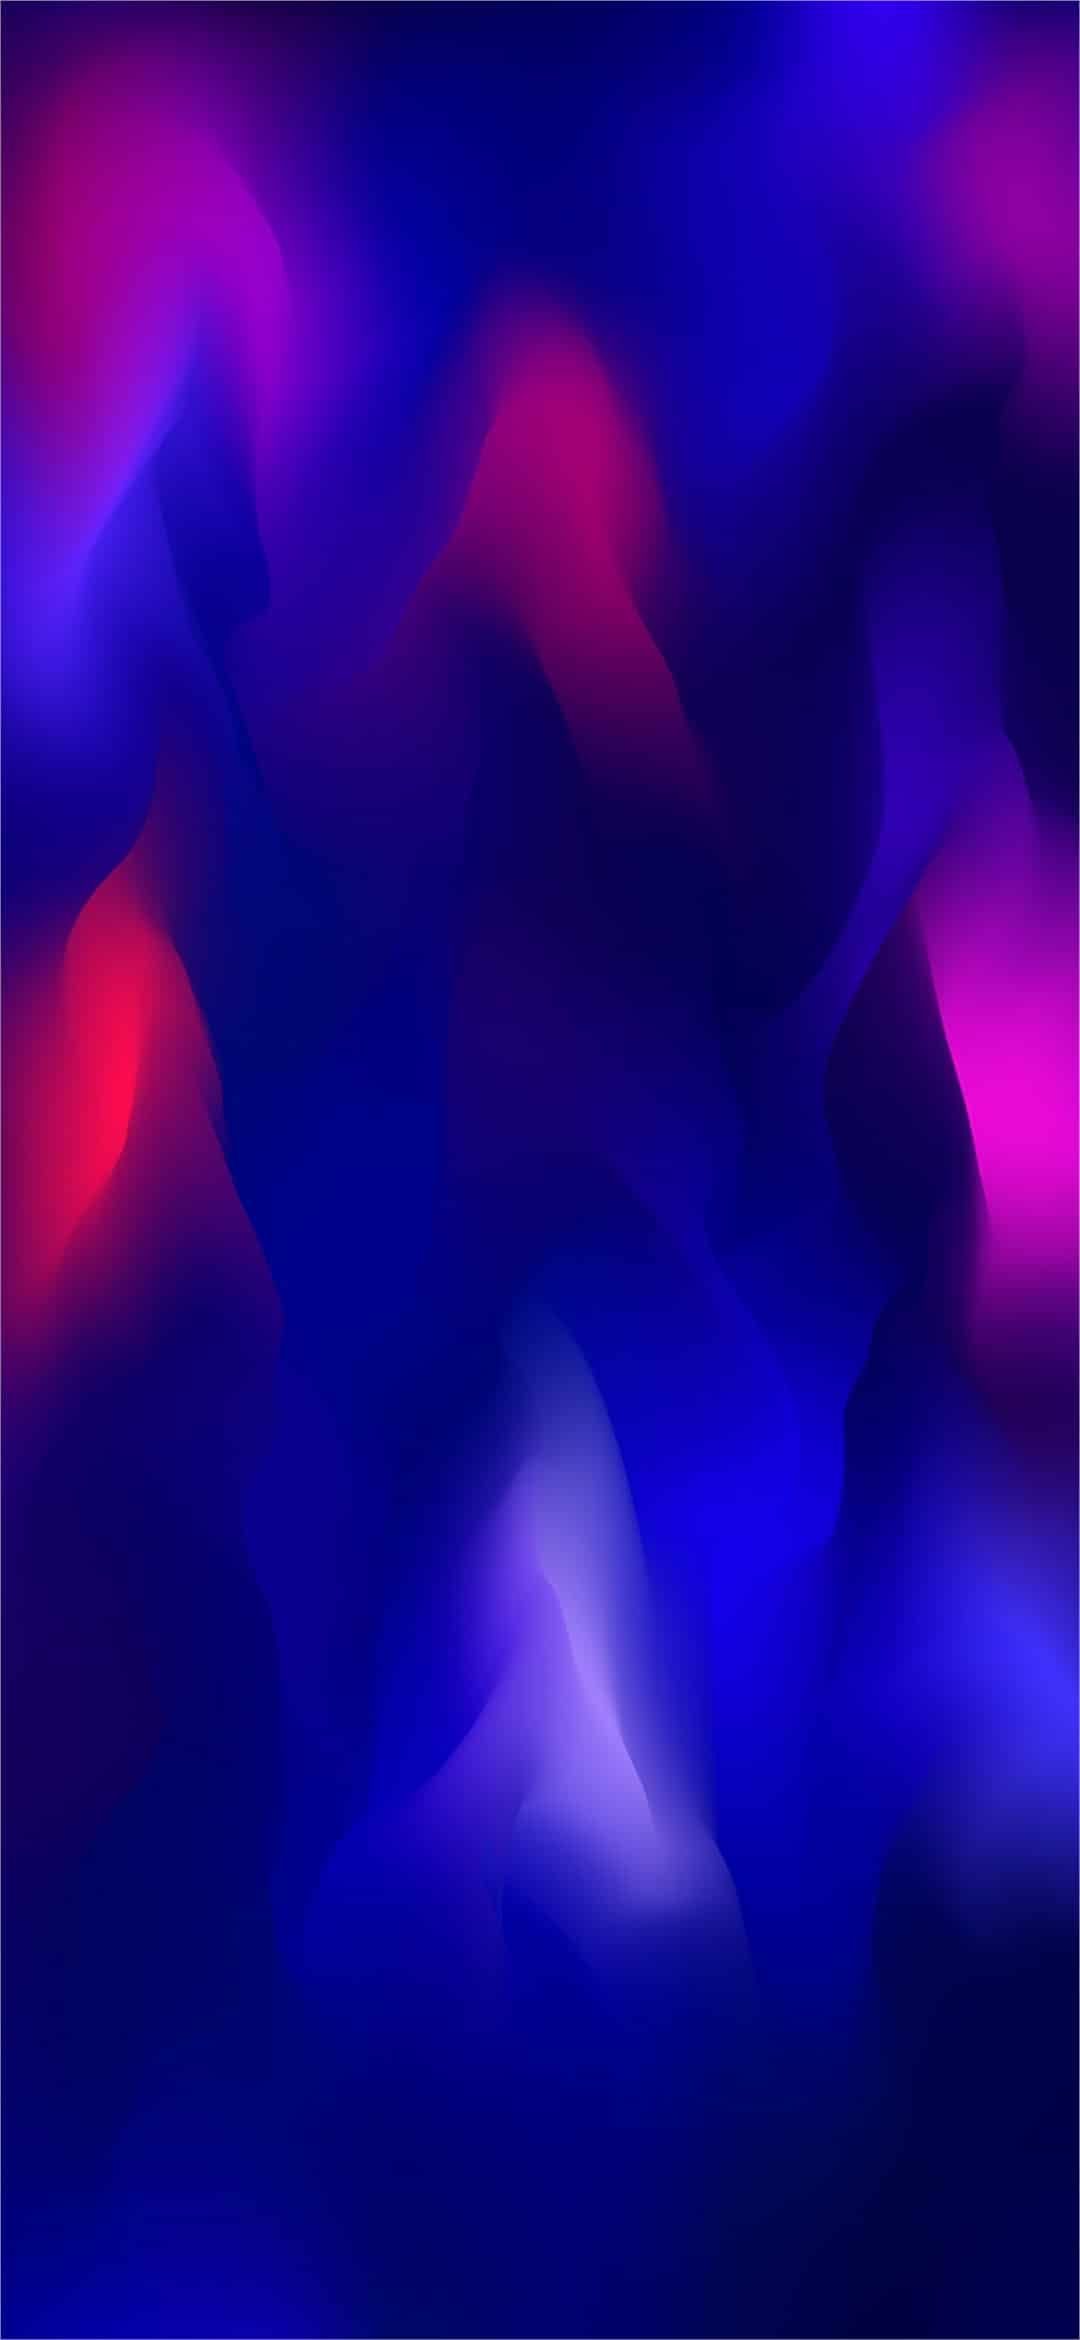 Download Color OS 6 Wallpapers (15 FHD+ Walls) | DroidViews